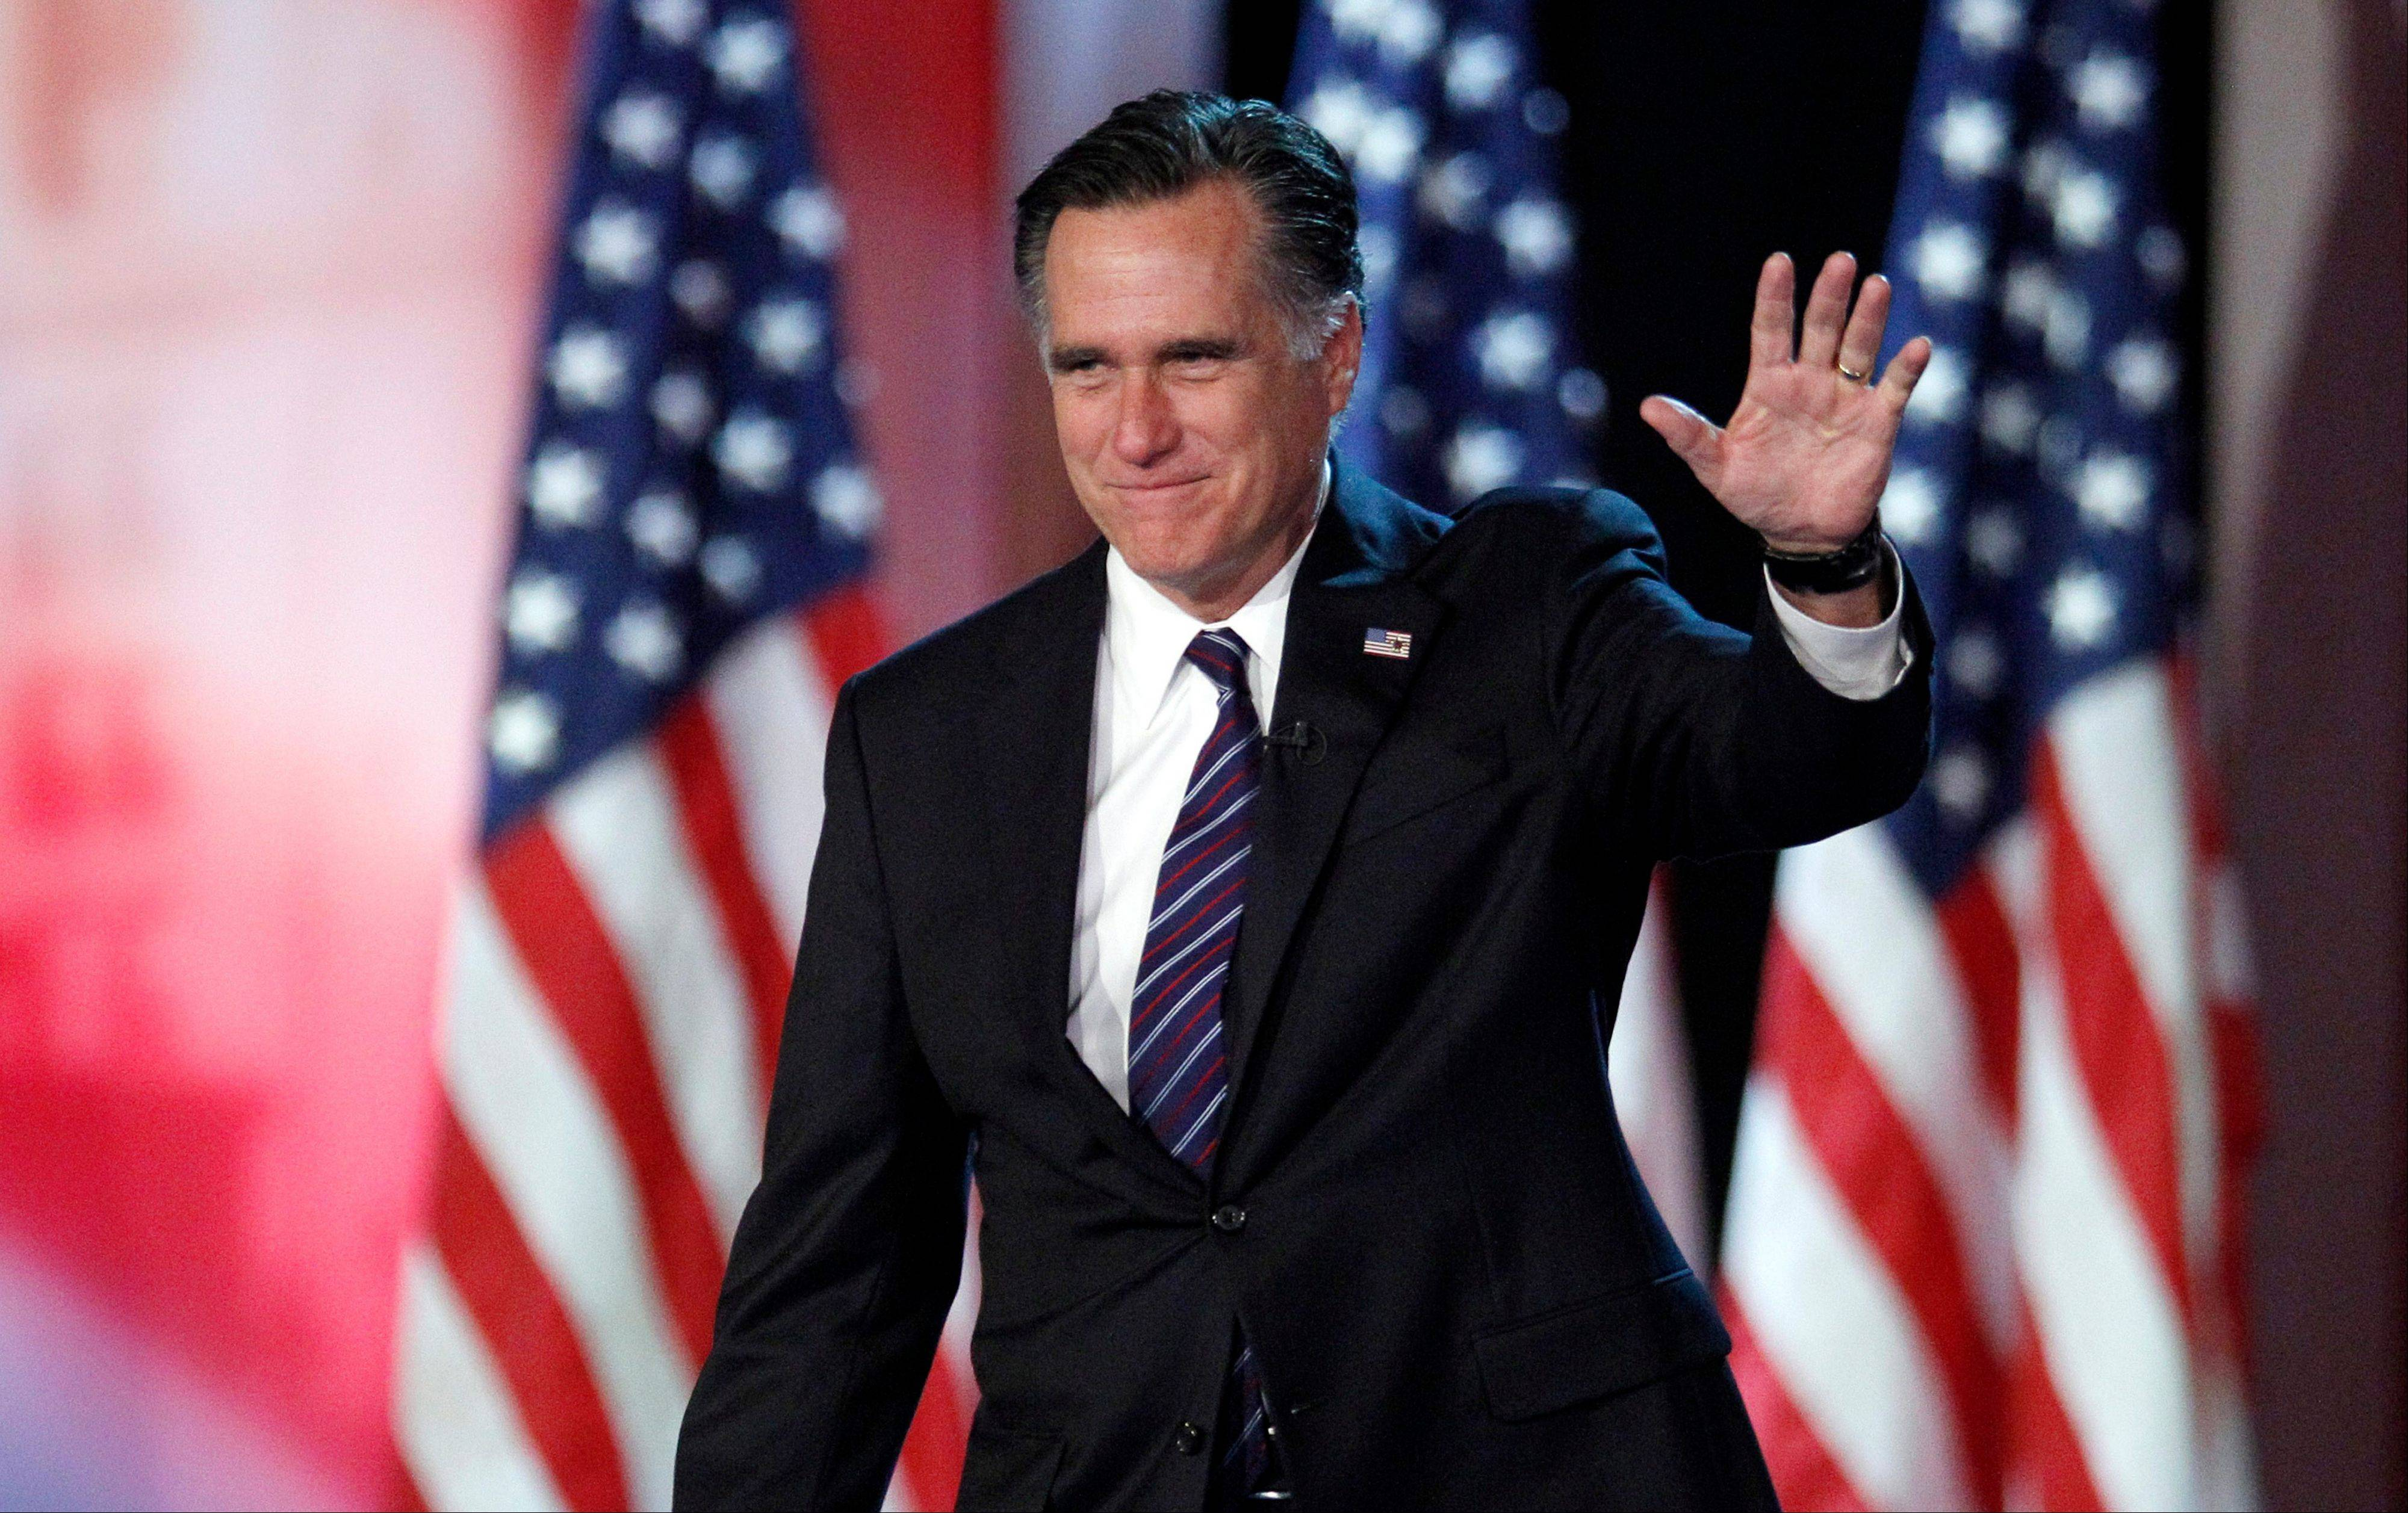 Former Republican presidential candidate Mitt Romney admits he was fully convinced he was going to win when he sat down to watch returns the night of November's election.